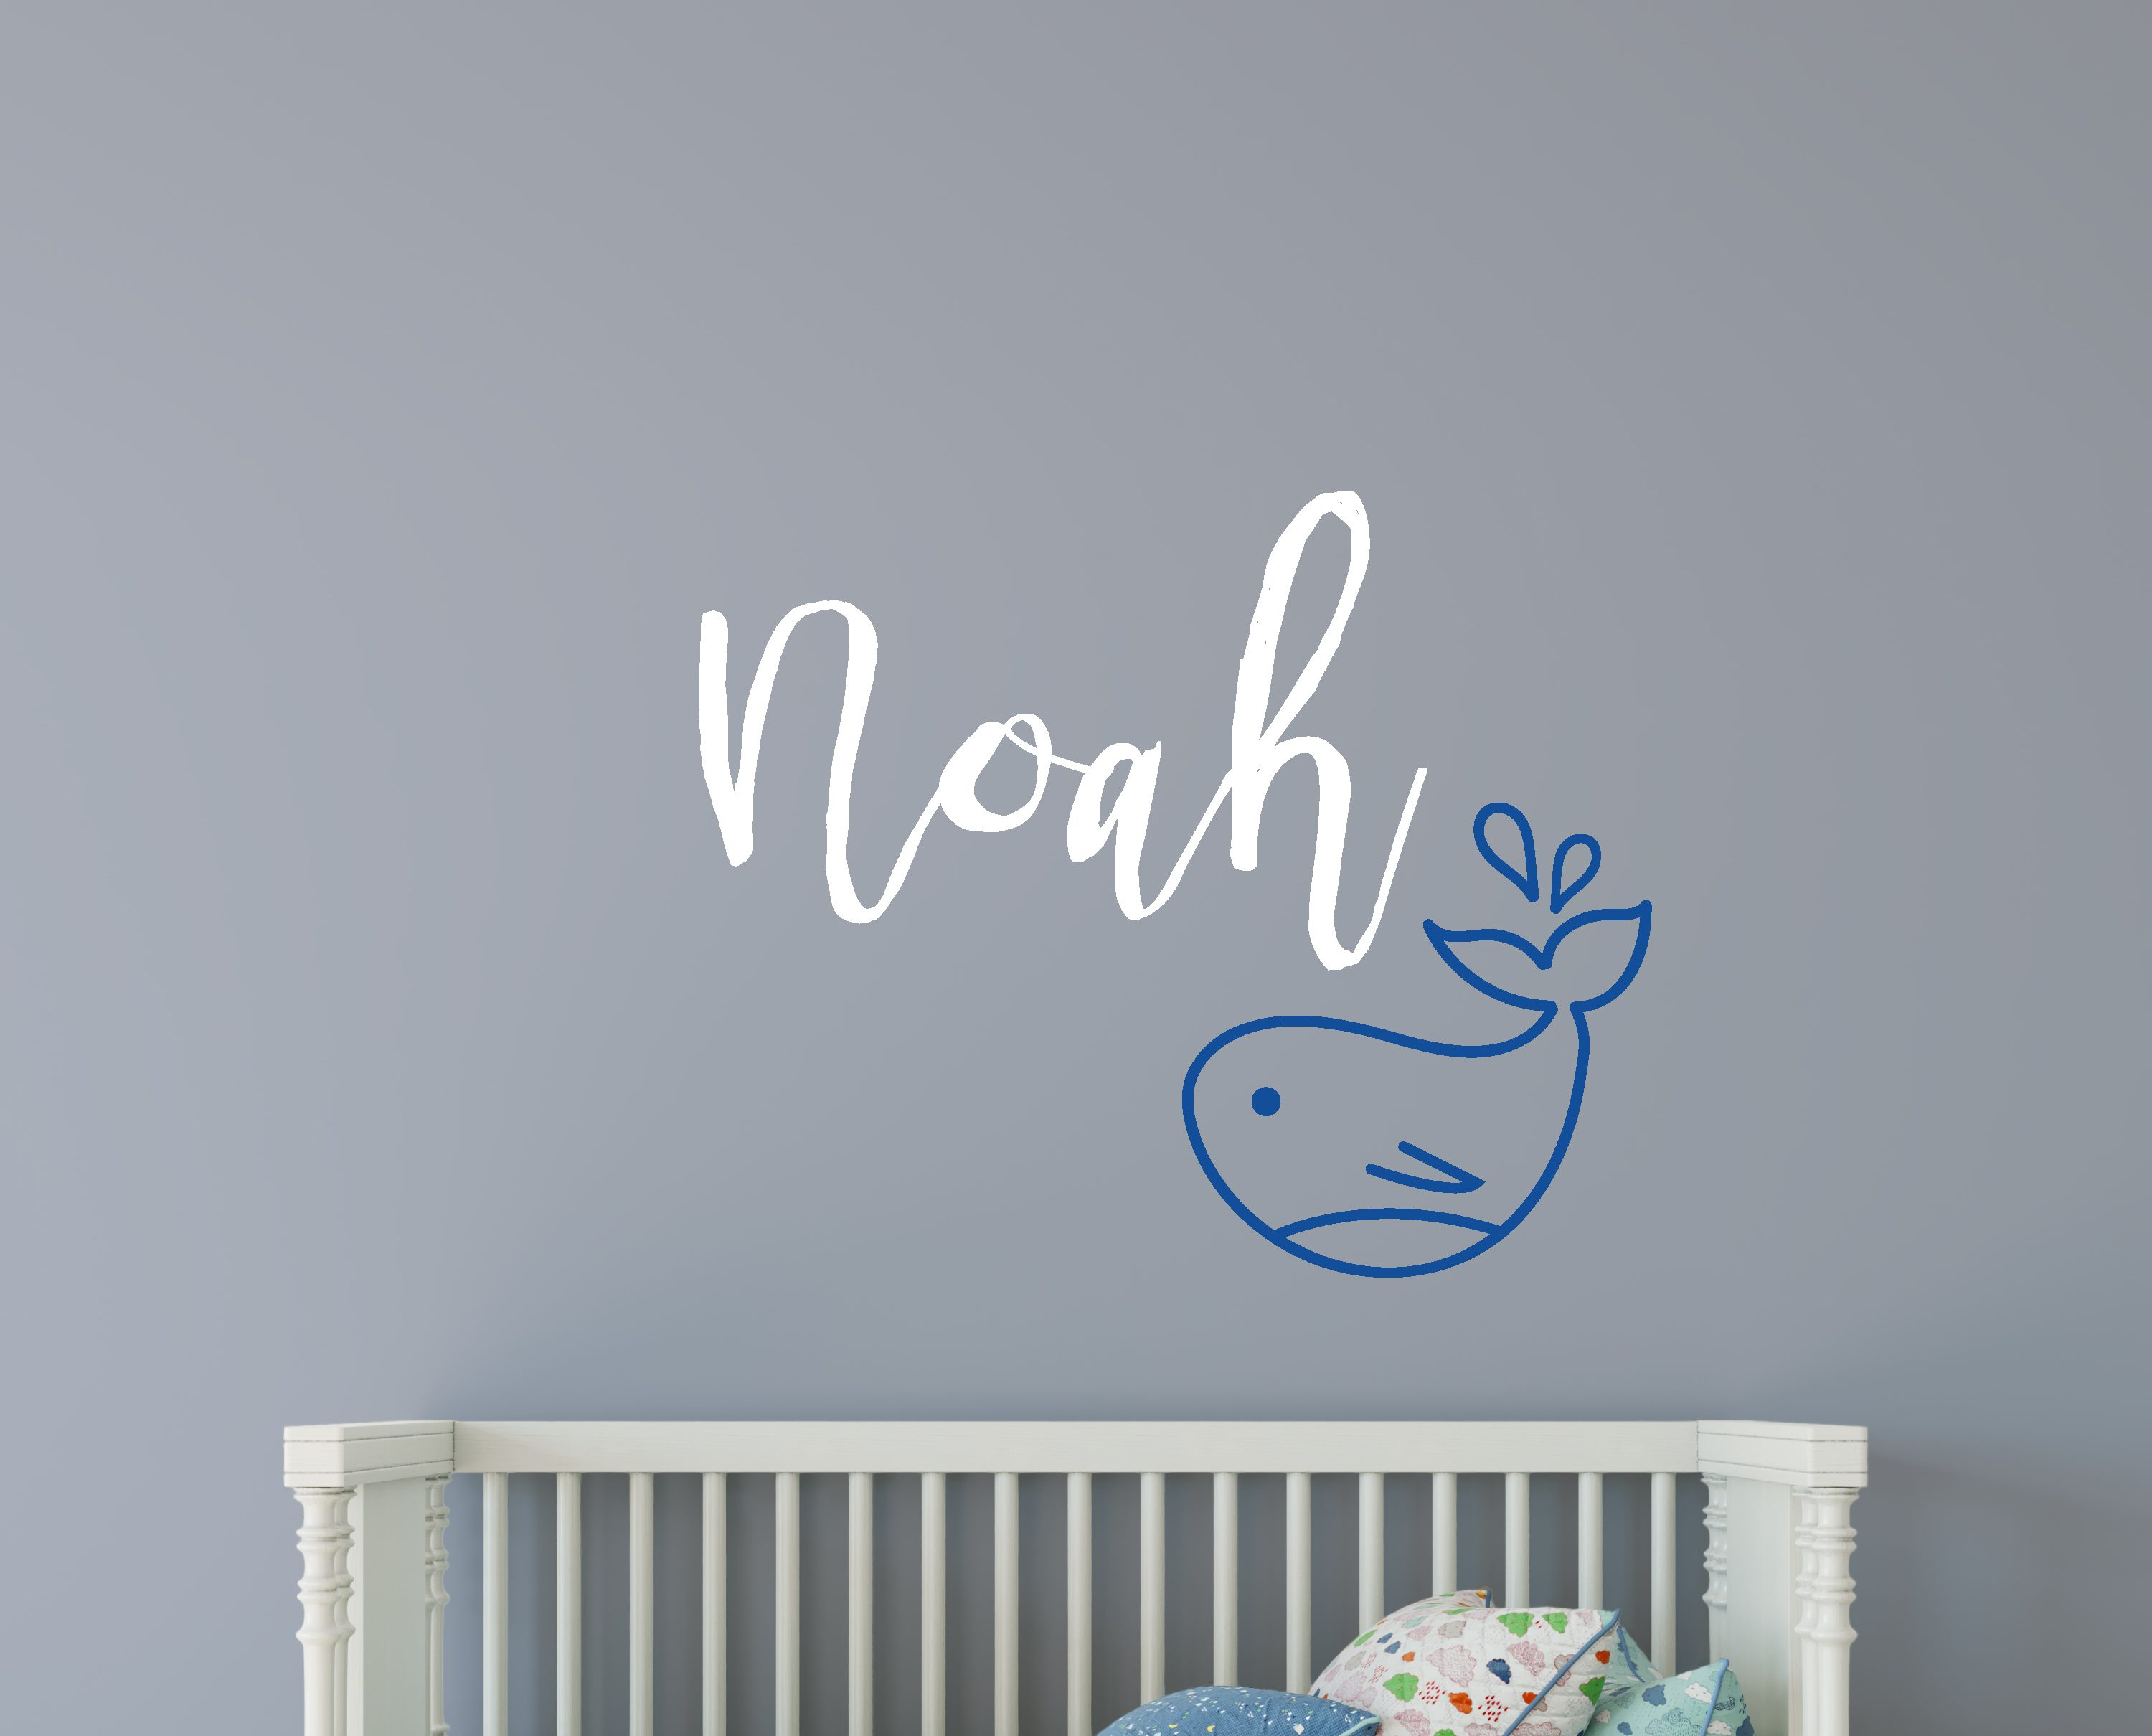 Childrens name whale wall sticker childrens nautical wall stickers childrens name whale wall sticker amipublicfo Gallery